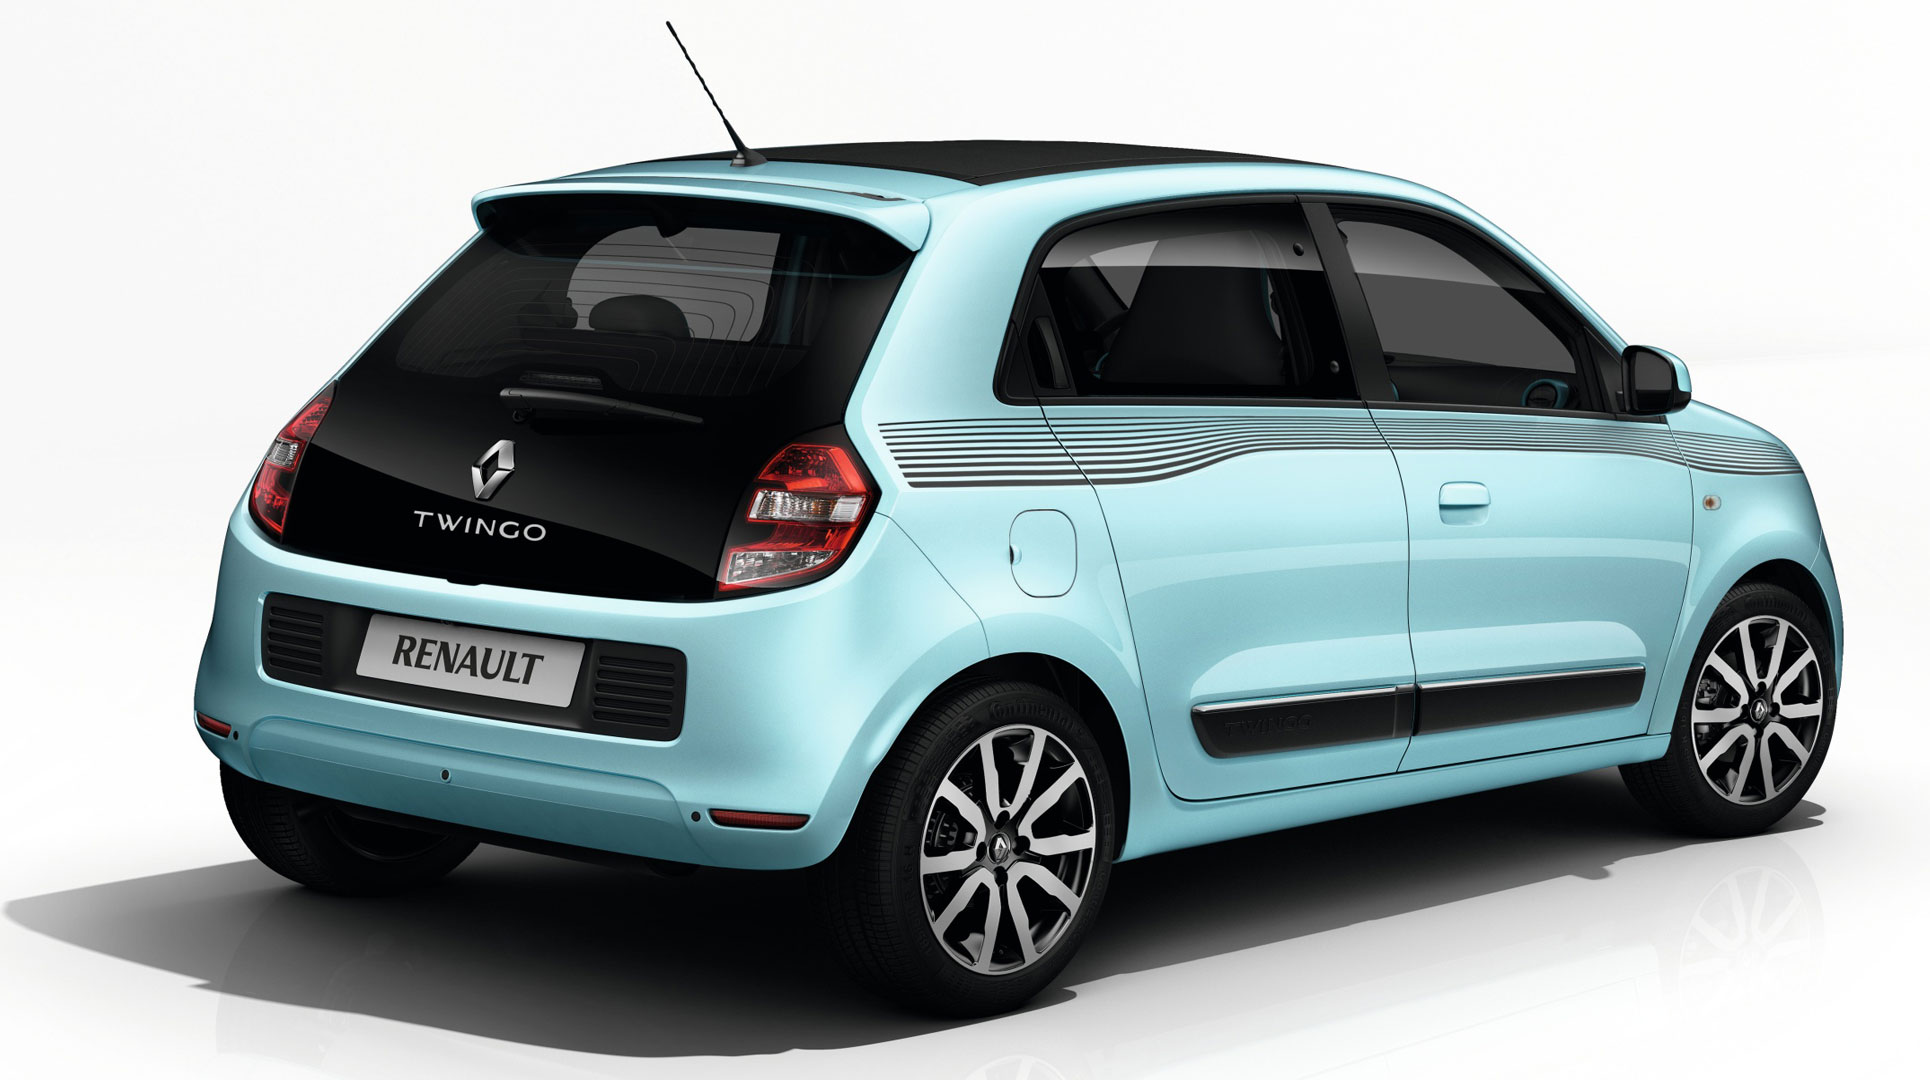 nouvelle renault twingo renault epernon. Black Bedroom Furniture Sets. Home Design Ideas